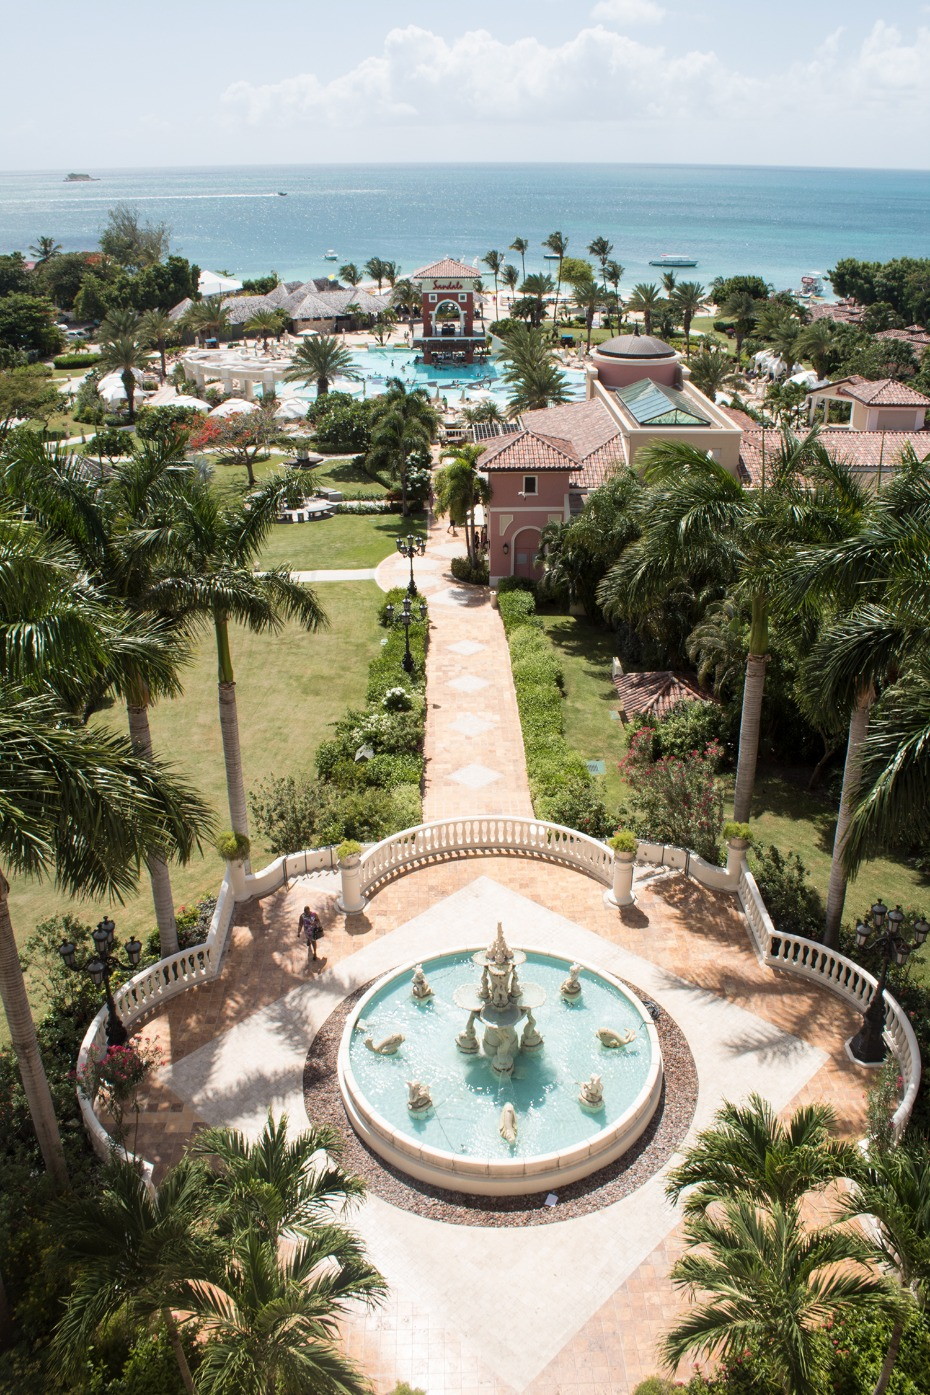 Get married at the Sandals Grande Antigua in the Caribbean